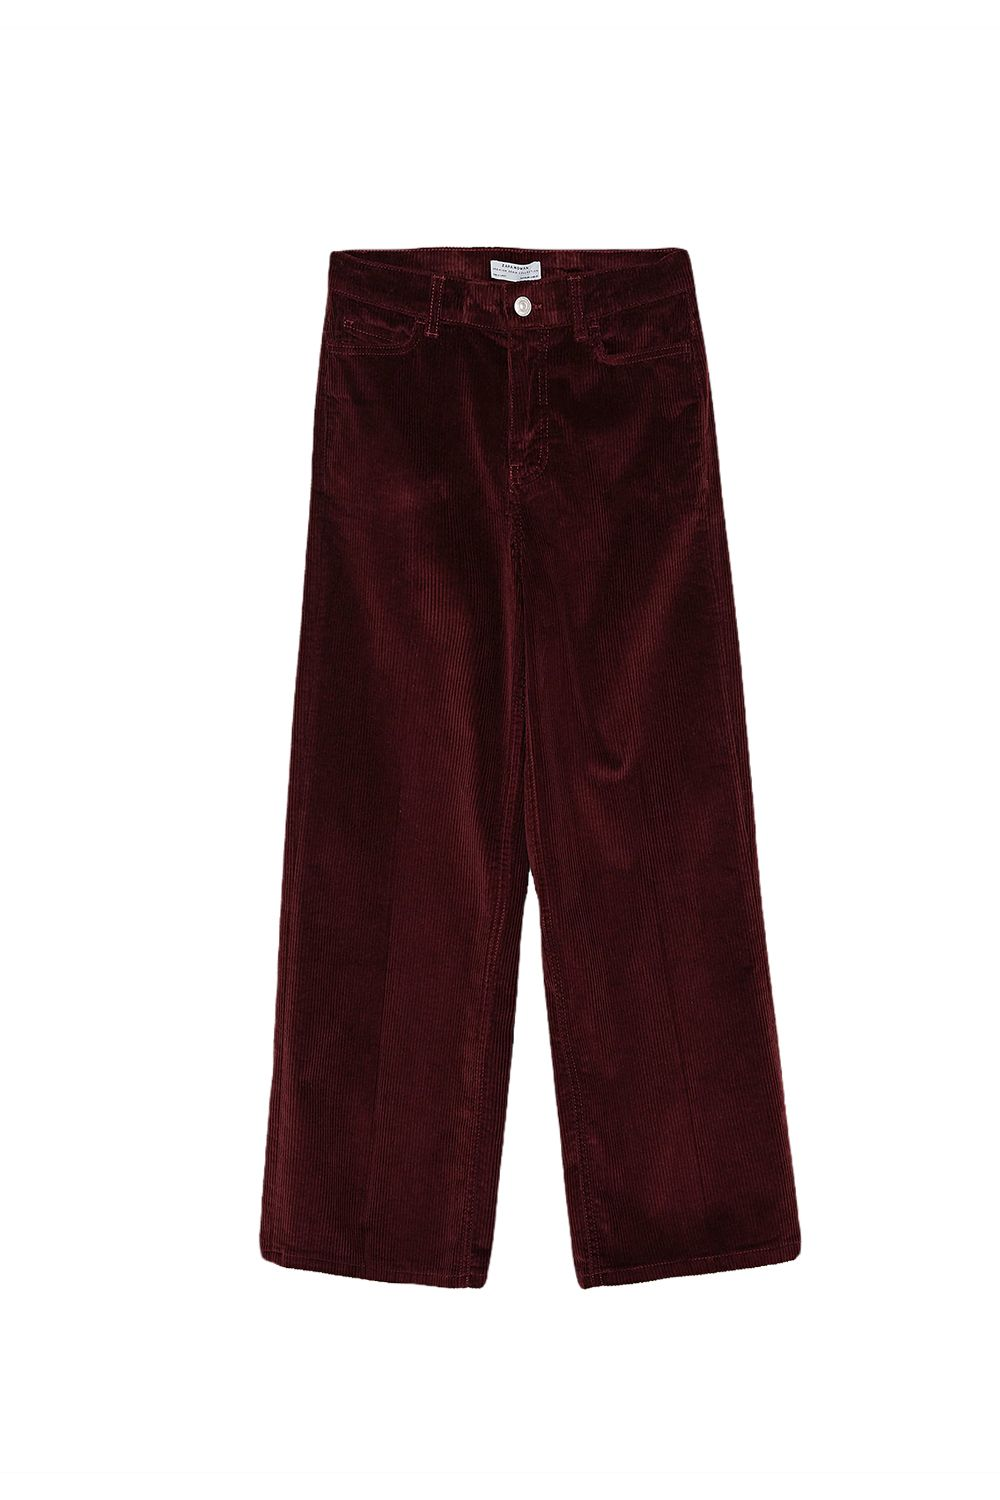 a570e5b809 13 Pairs of Pants to Wear if You're Tired of Jeans